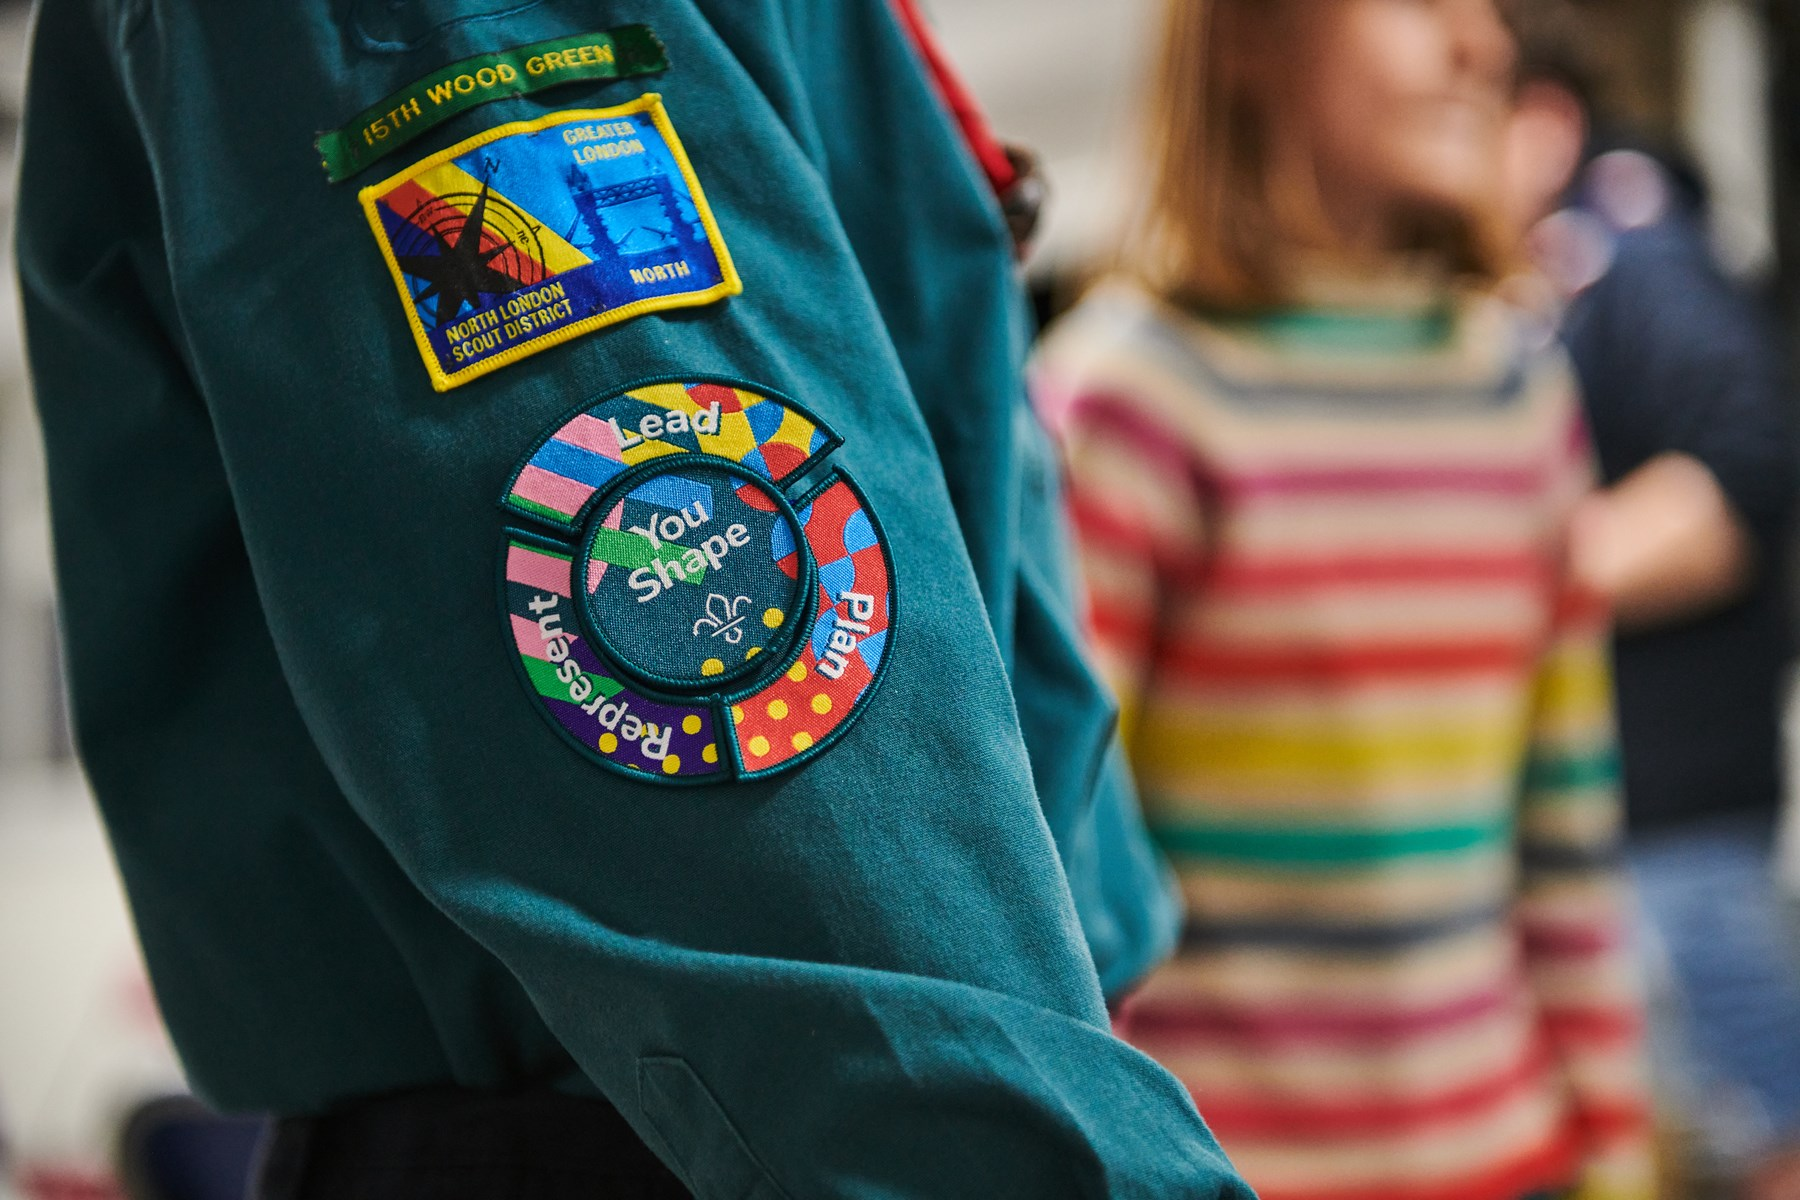 A picture of the Youshape award on a young person's uniform